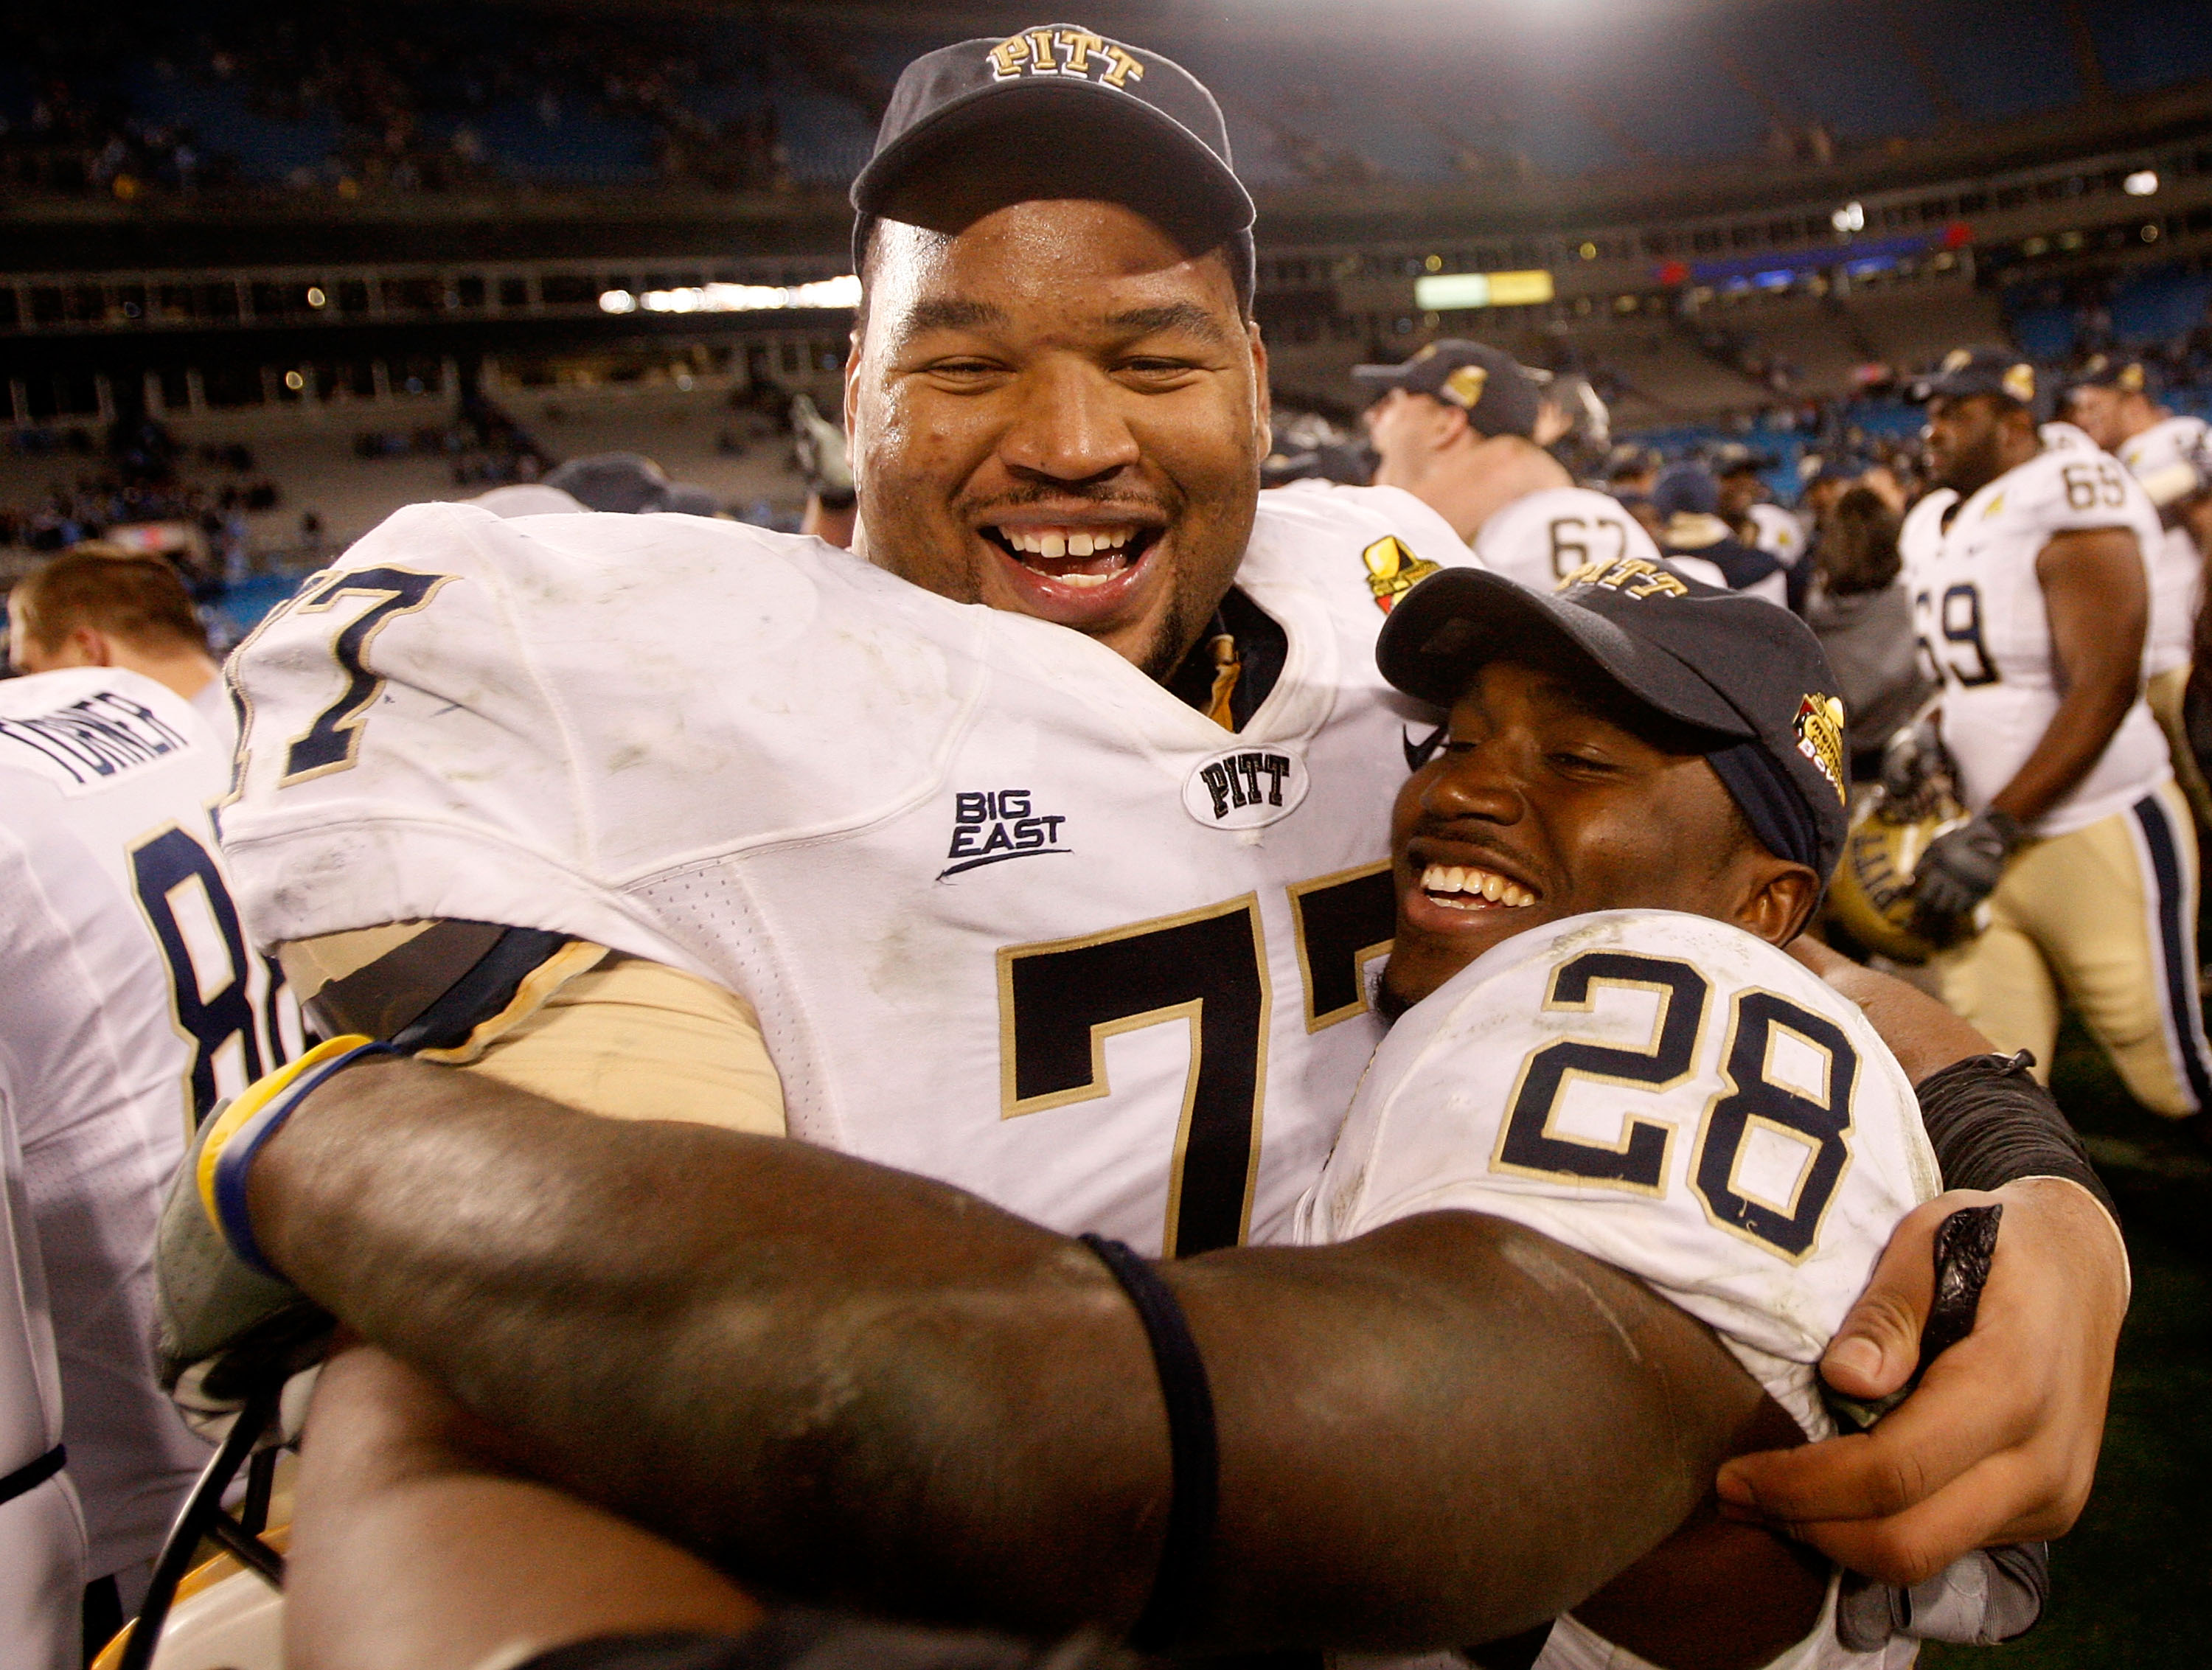 CHARLOTTE, NC - DECEMBER 26:  Teammates Jason Pinkston #77 and Dion Lewis #28 of the Pittsburgh Panthers celebrates after a 19-17 victory over the North Carolina Tar Heels on December 26, 2009 in Charlotte, North Carolina.  (Photo by Streeter Lecka/Getty